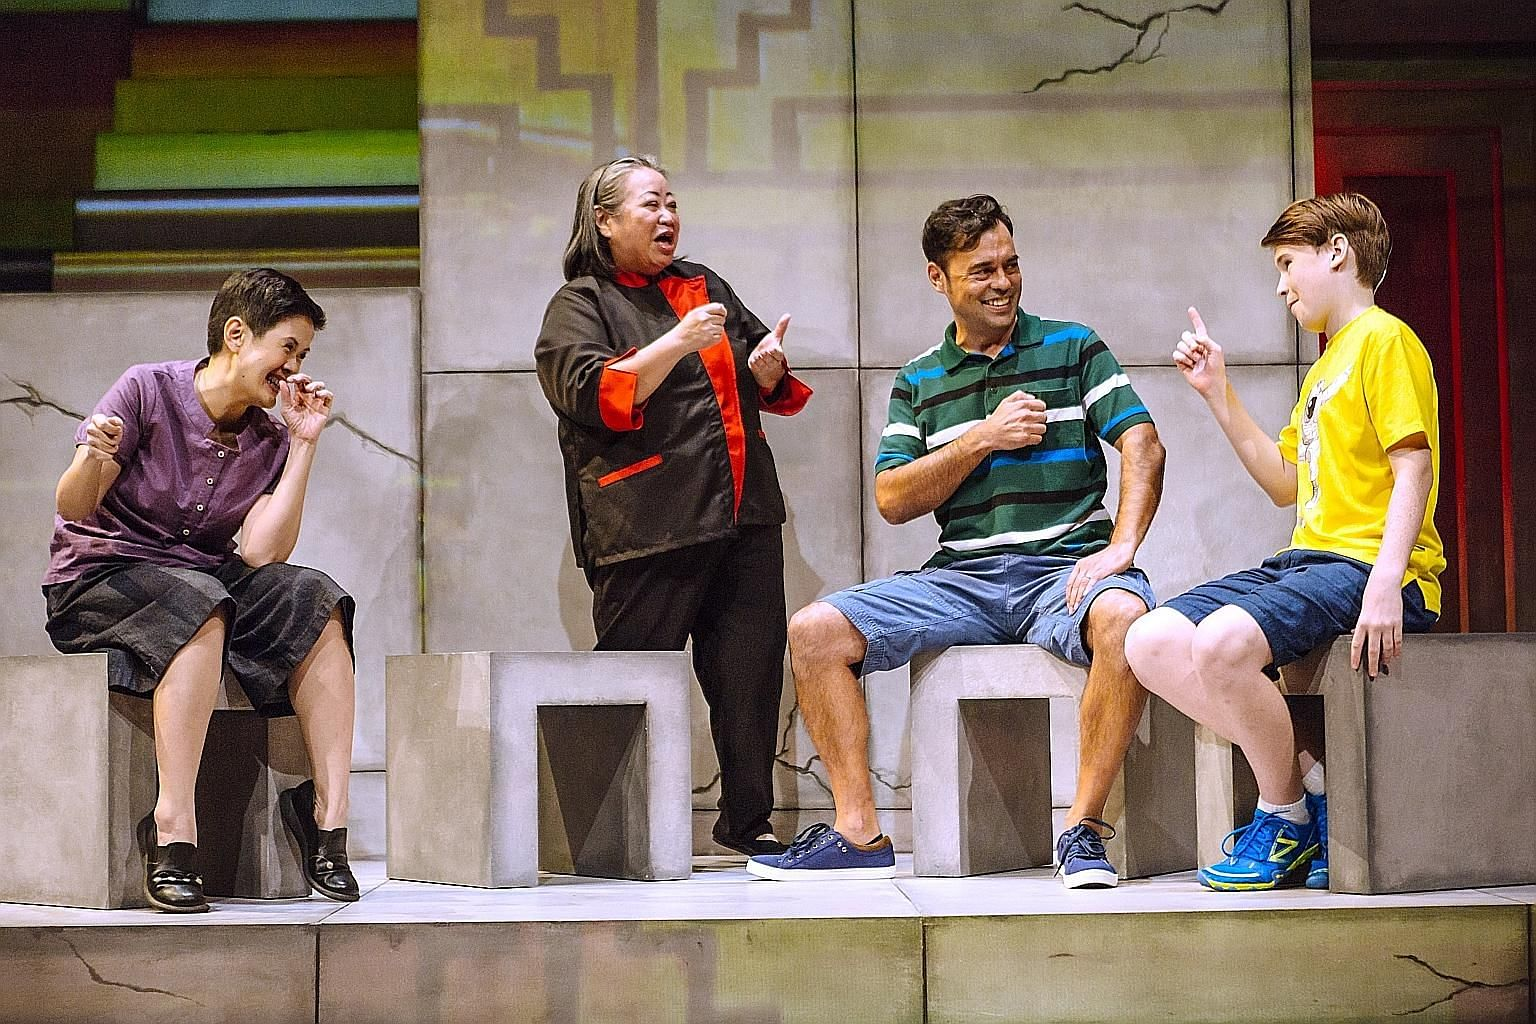 Tango's cast includes (from left) Karen Tan, Lok Meng Chue, Emil Marwa and Dylan Jenkins. (Clockwise from top left) Cheryl Ong from SA, Safuan Johari from Nada, new media artist Brandon Tay, Rizman Putra from Nada, and Natalie Tse and Andy Chia from